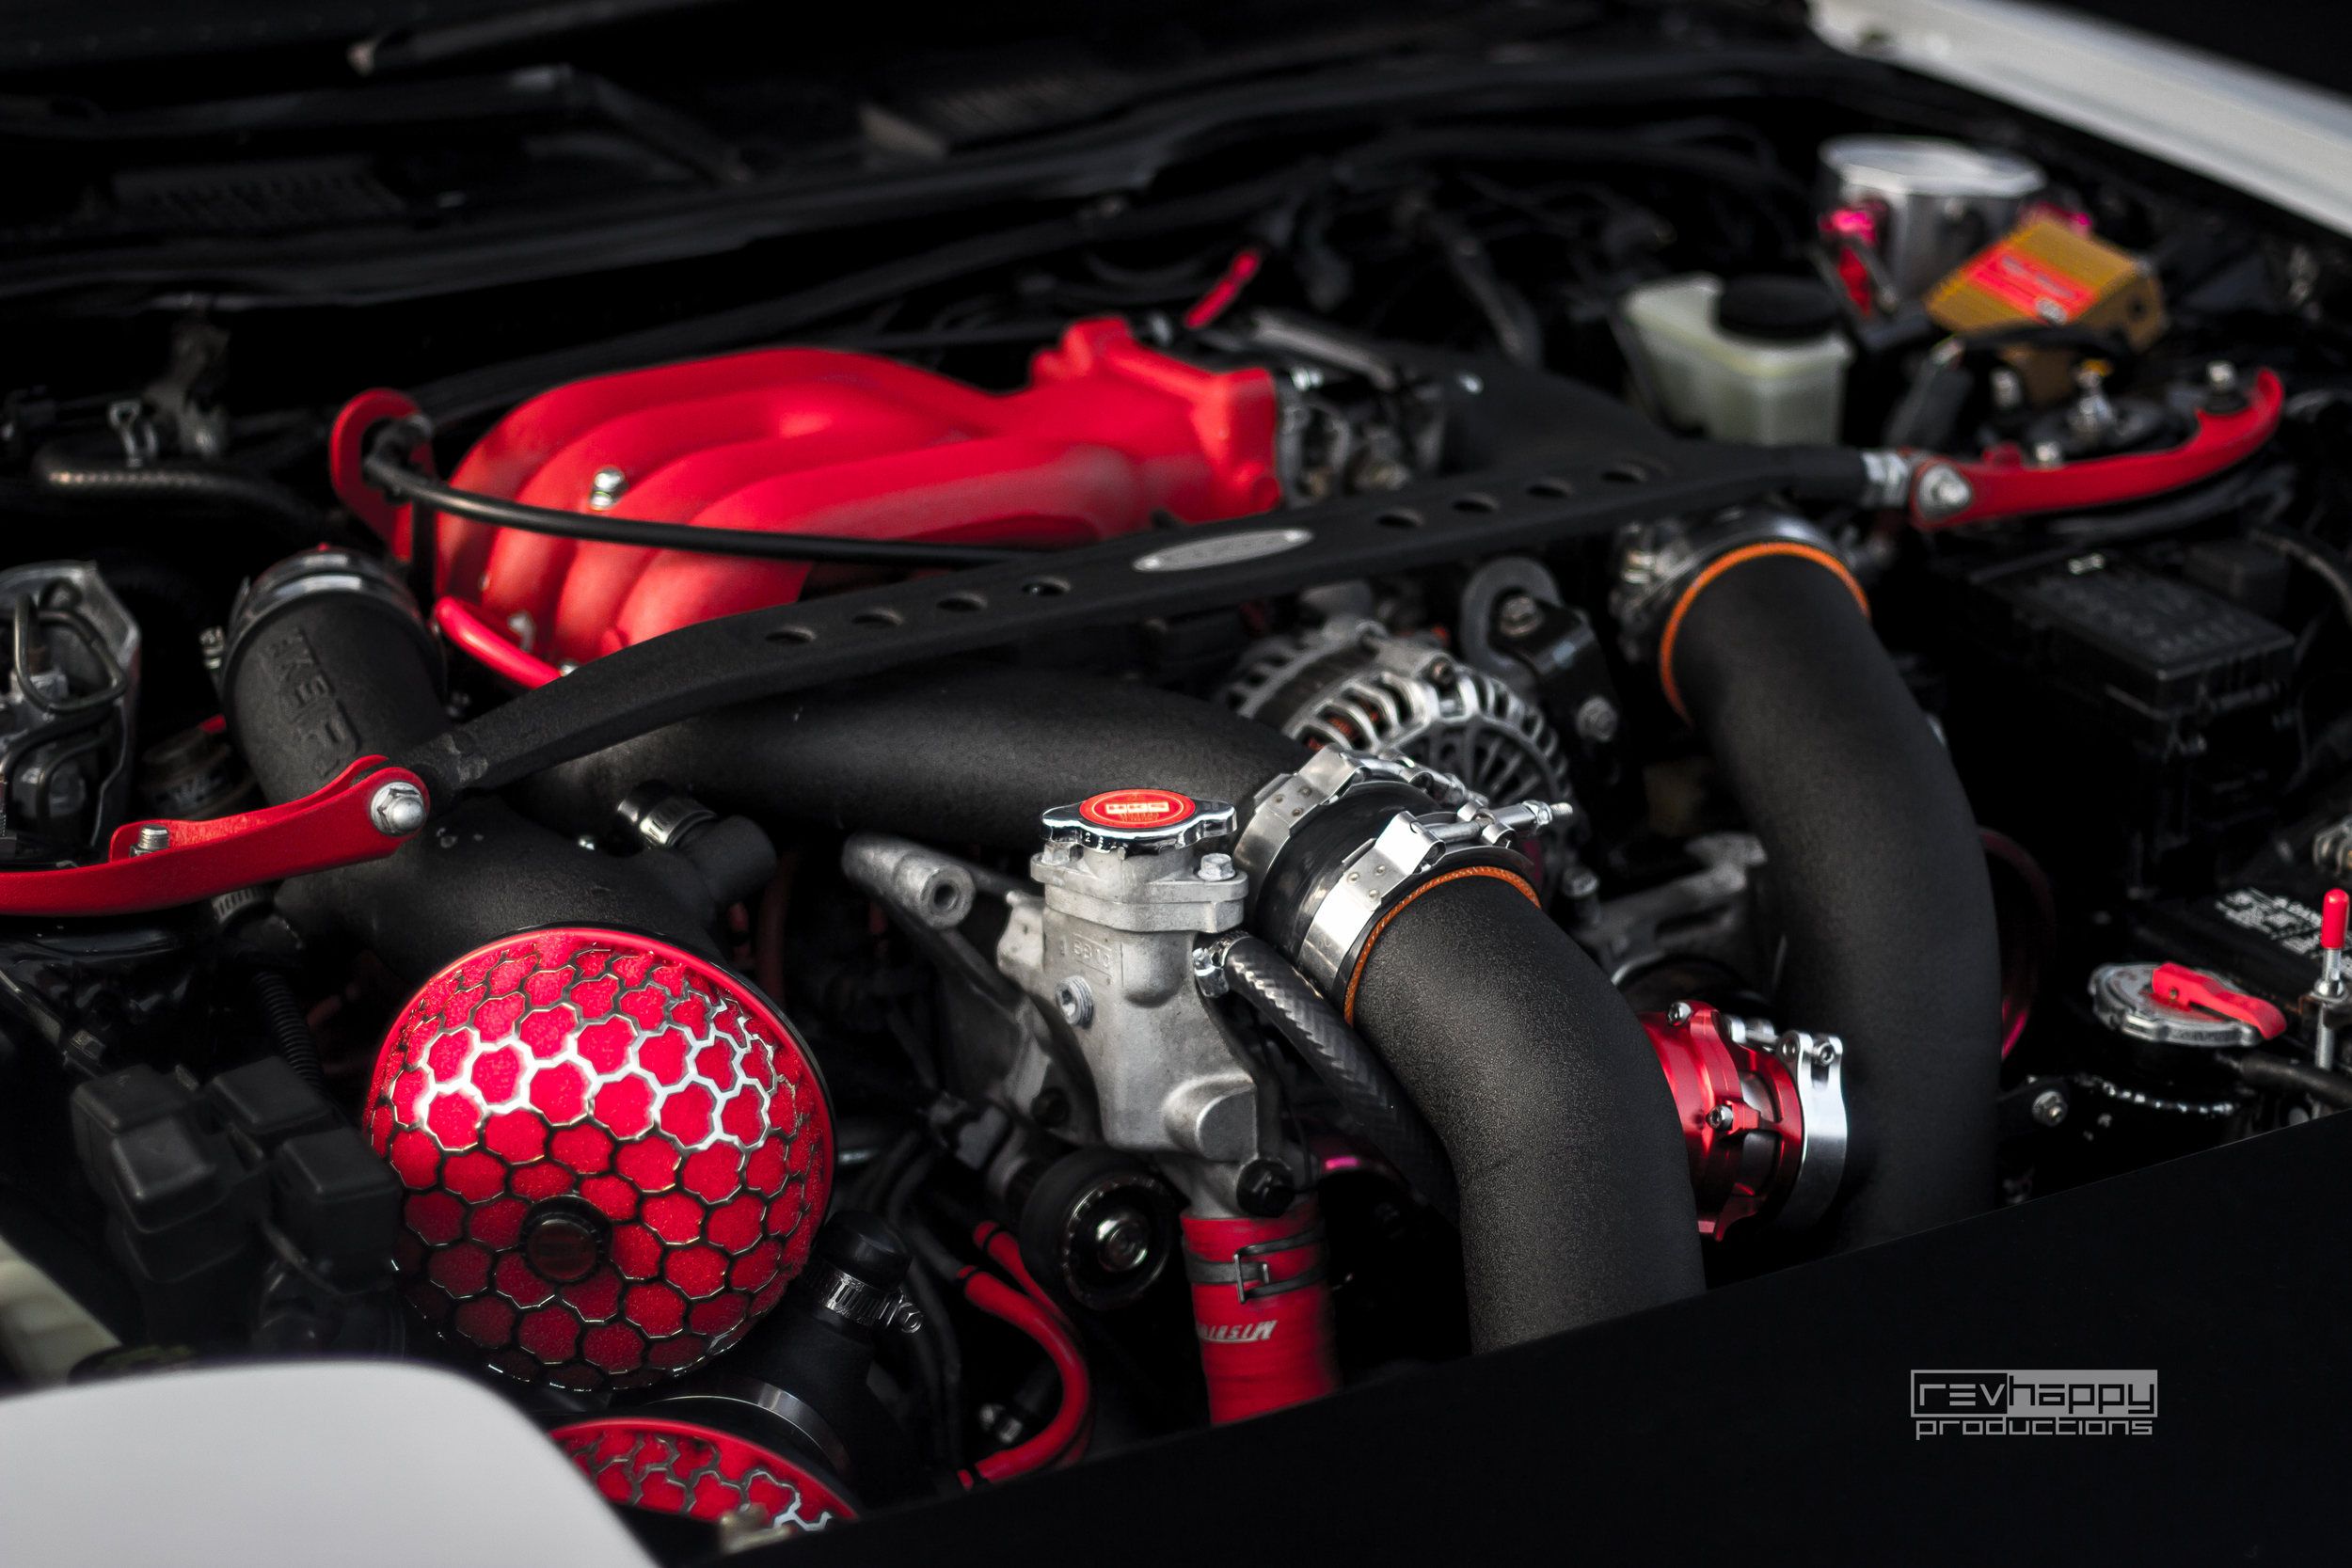 Two turbos, lots of red, and lots of go-fast parts.